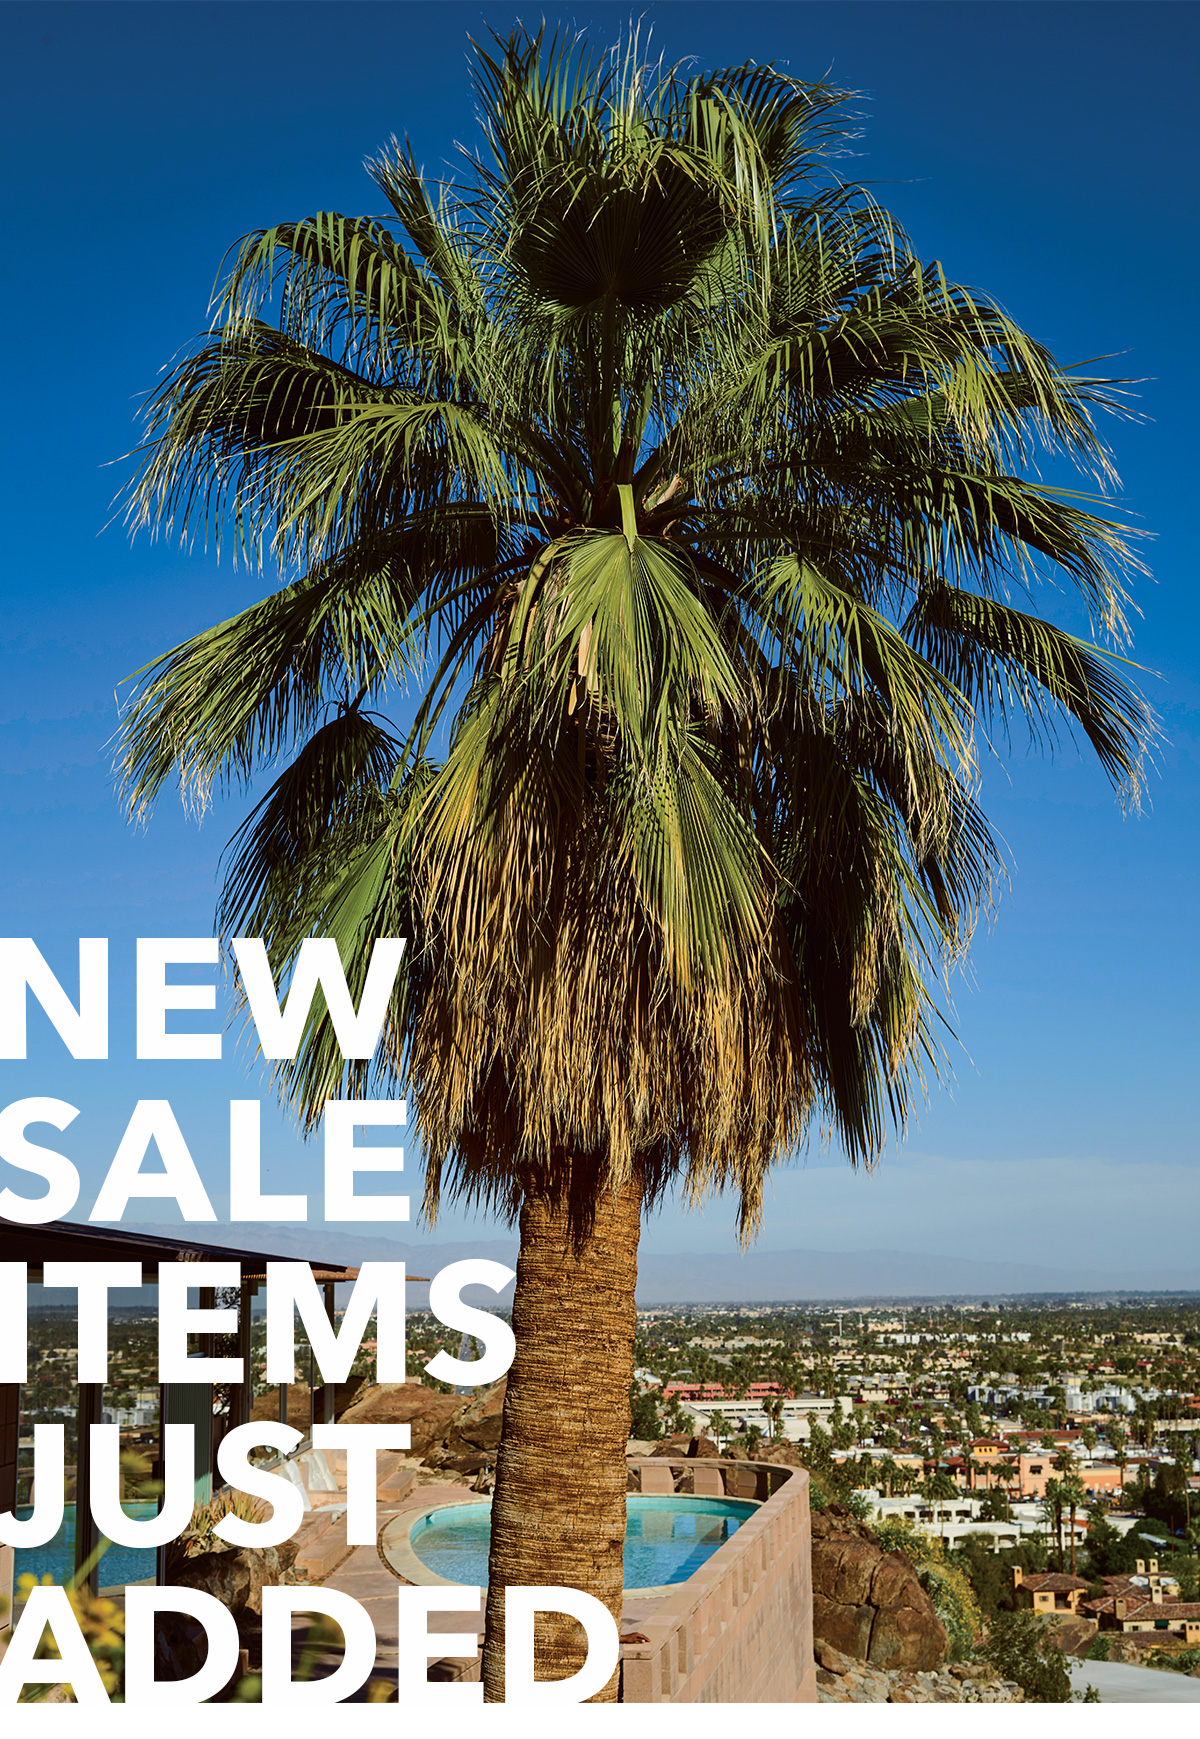 New Sale Items Just Added